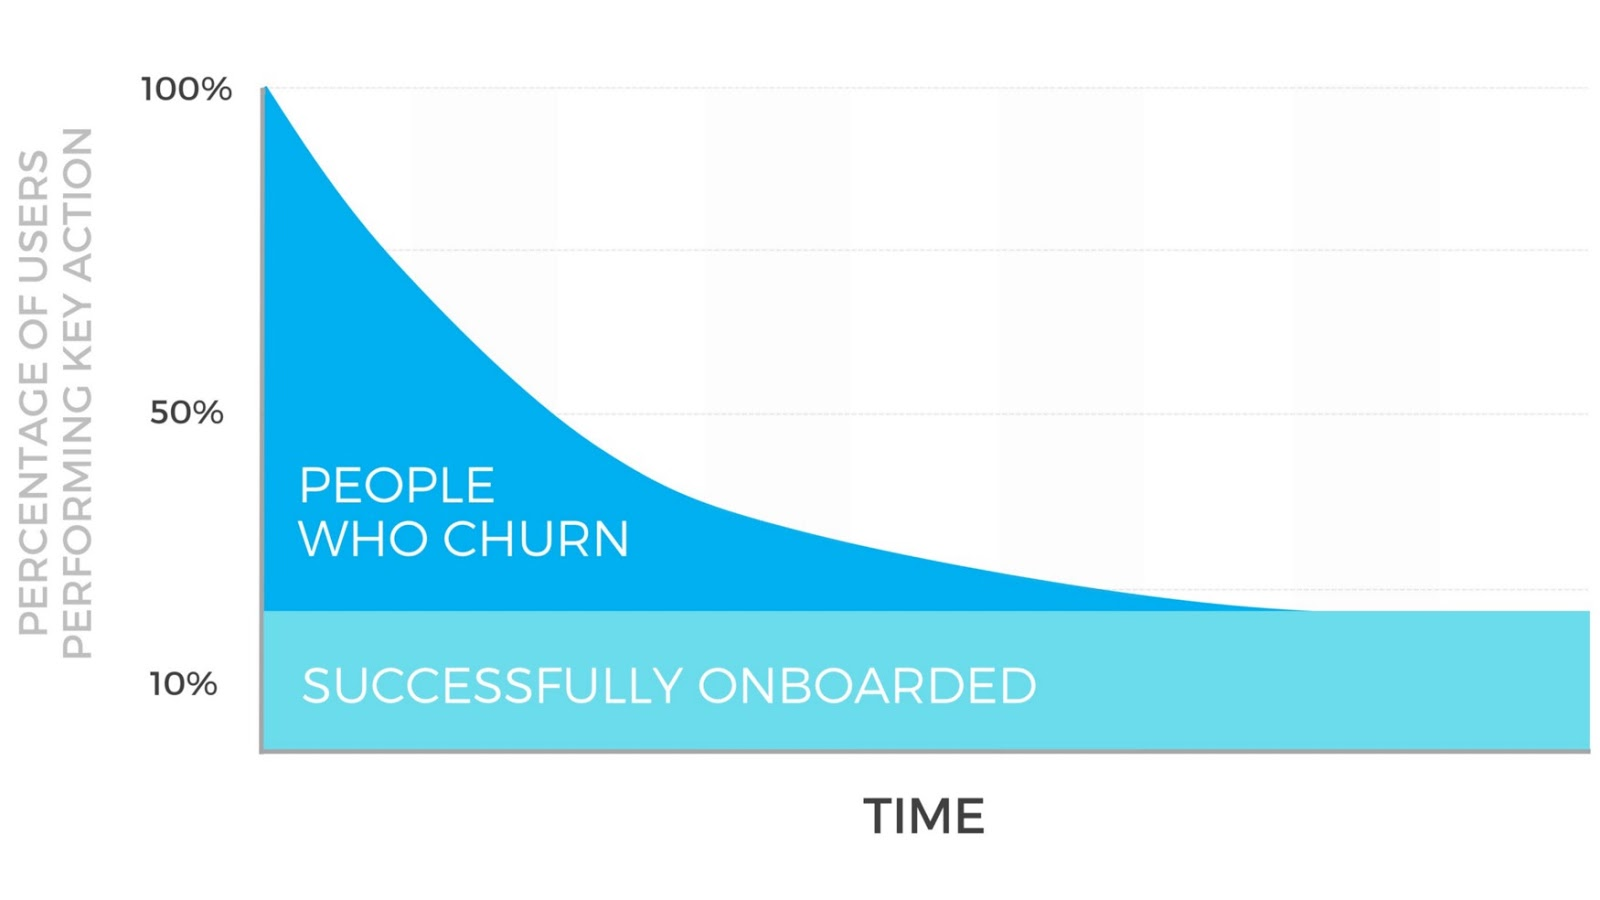 Percentage of Users Performing Key Action - People Who Churn - Successfully Onboarded